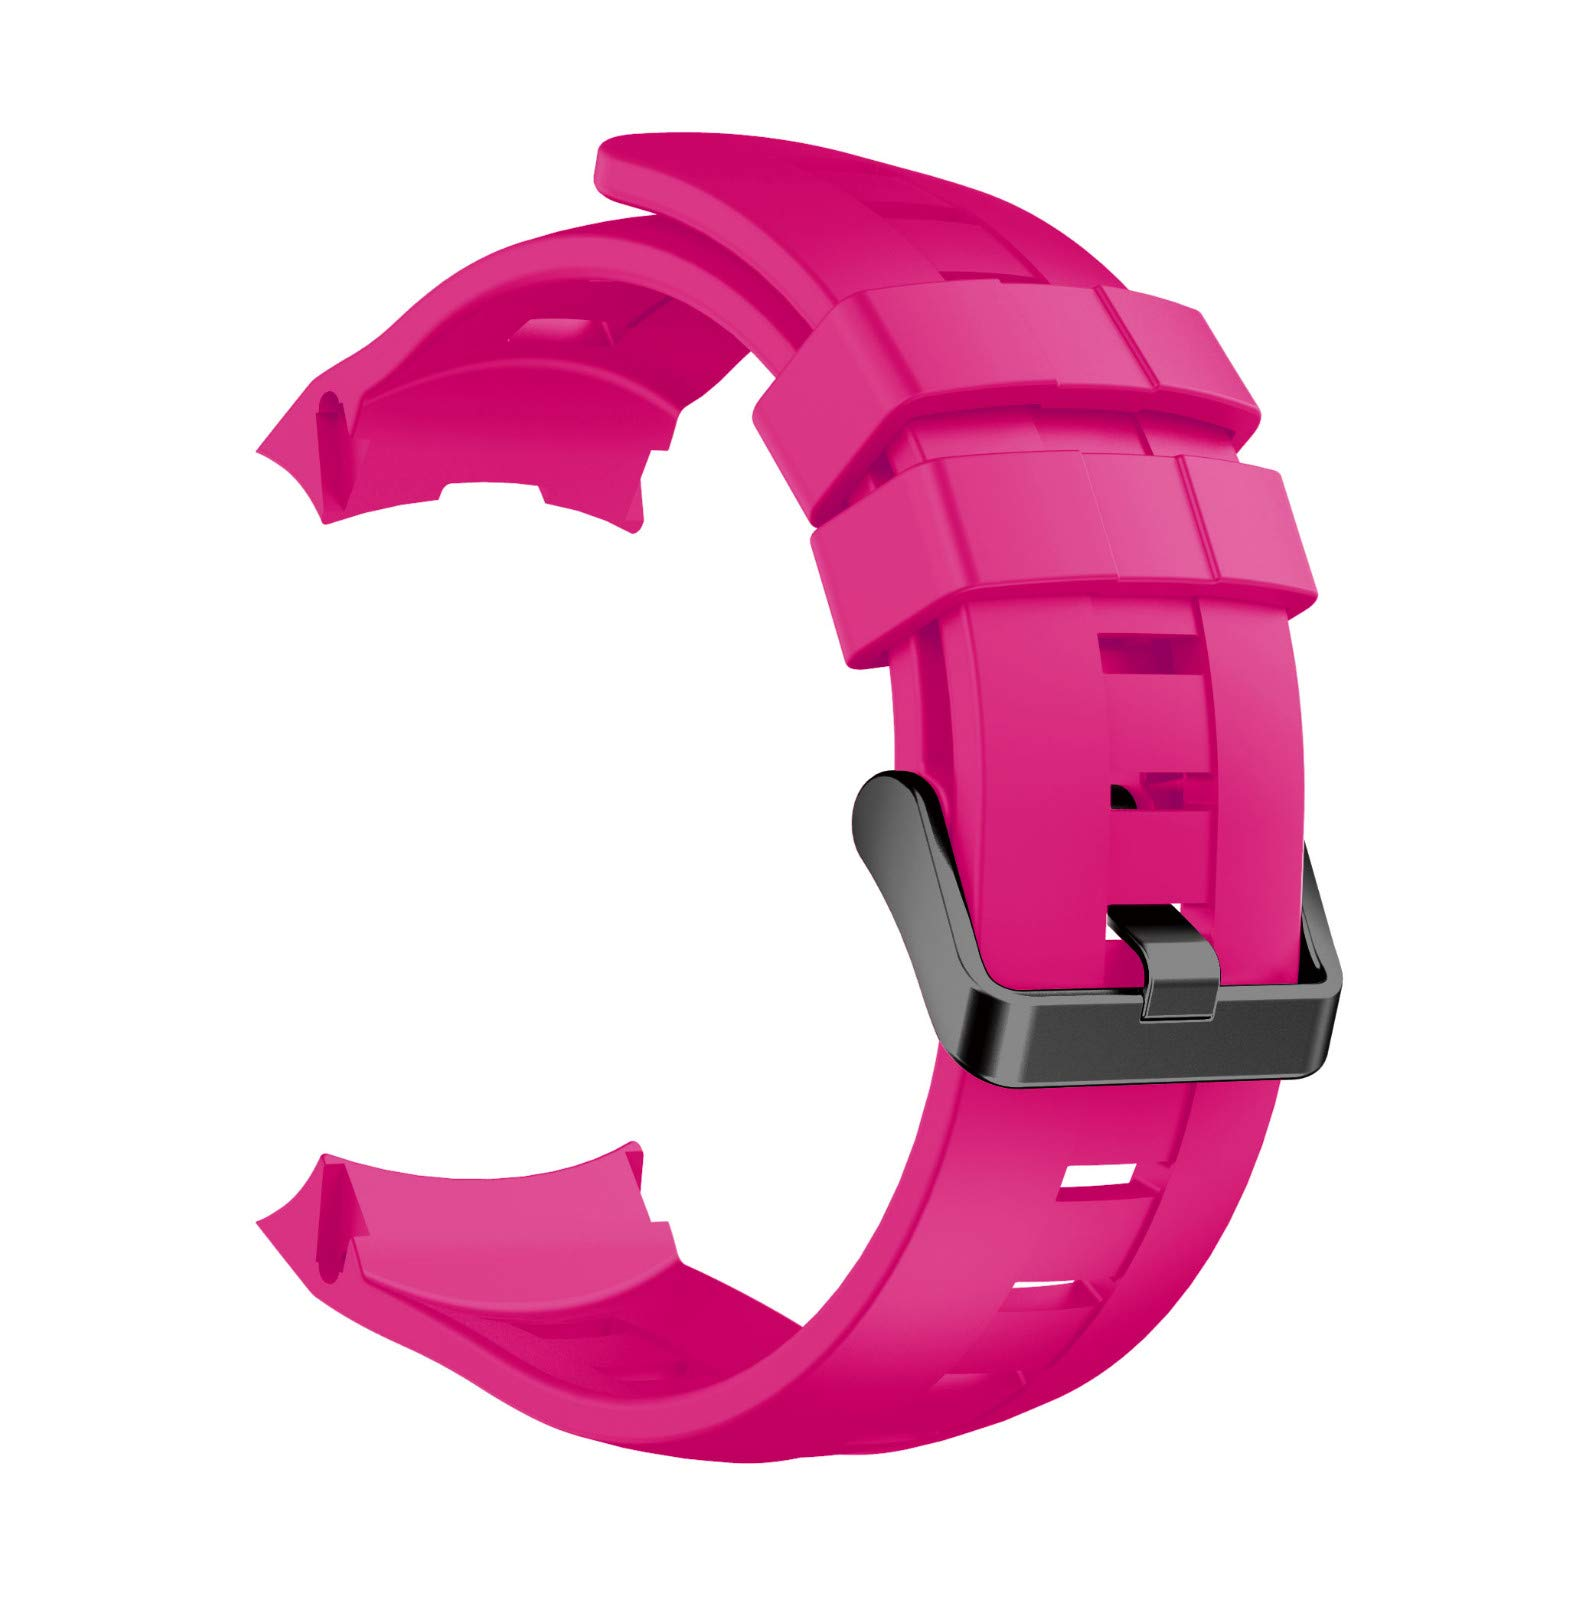 Sonmer Replacement Soft Silicone WristBand Strap For Suunto Ambit 3 Vertical (Hot Pink)